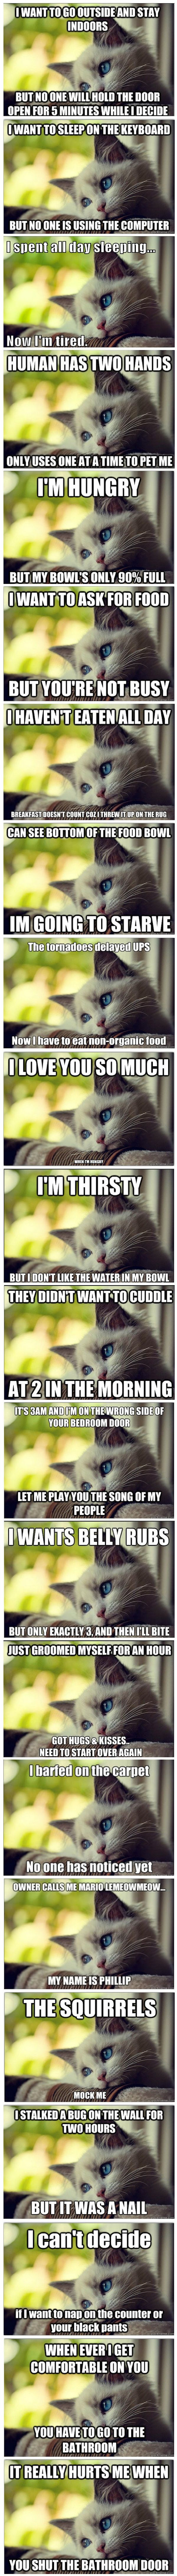 Best Of First-World Cat Problems